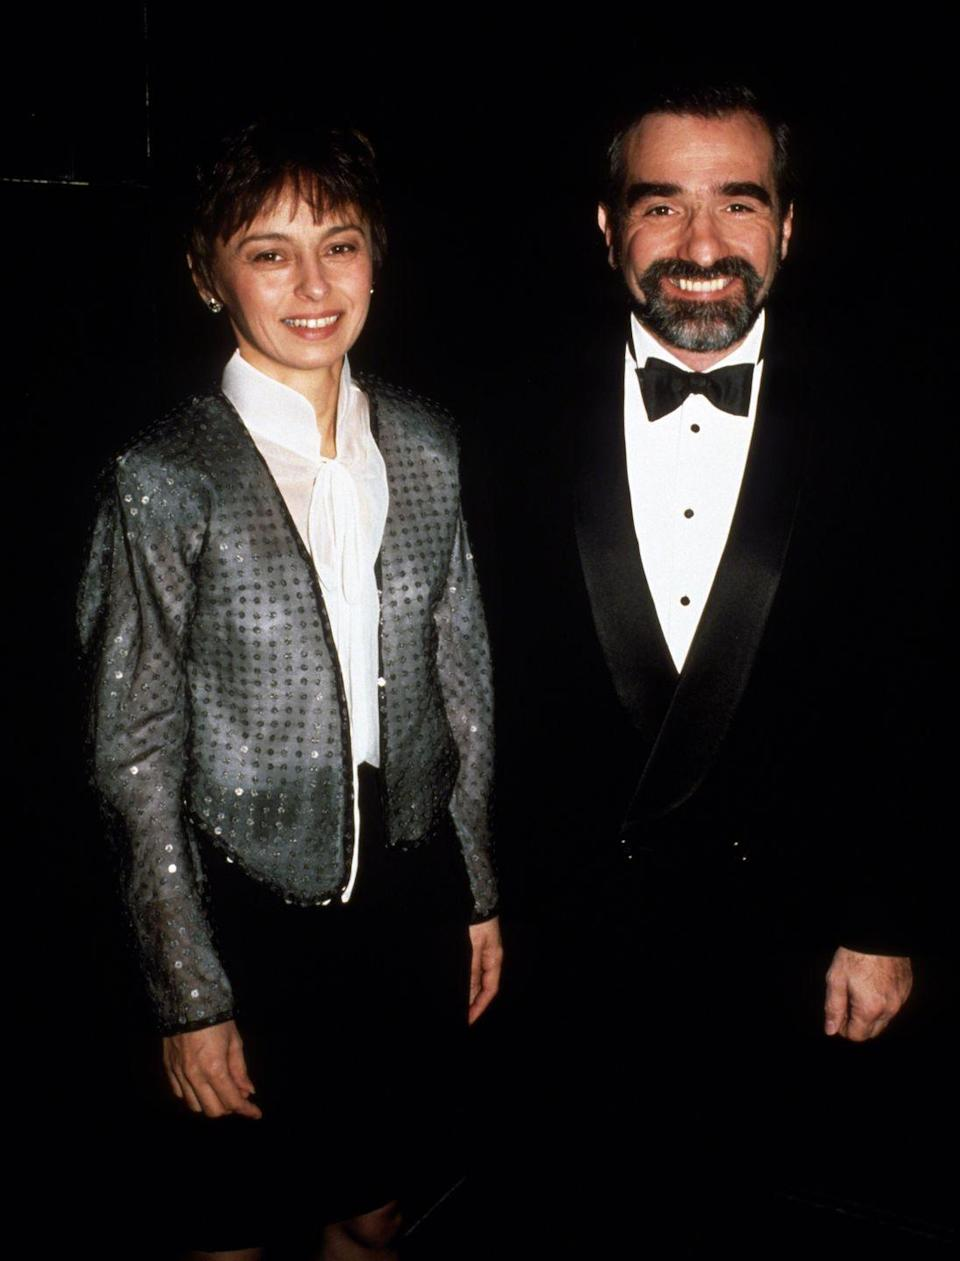 "<p>The <em>Goodfellas</em> and <em>Wolf of Wall Street</em> director Martin Scorcese has been married <a href=""https://www.distractify.com/p/celebrities-multiple-marriages"" rel=""nofollow noopener"" target=""_blank"" data-ylk=""slk:five times"" class=""link rapid-noclick-resp"">five times</a>. He was previously married to producer Laraine Brennan, teacher Julia Cameron, actress Isabella Rossellini, and producer Barbara de Fina. His current wife is television producer Helen Morris.<br></p>"